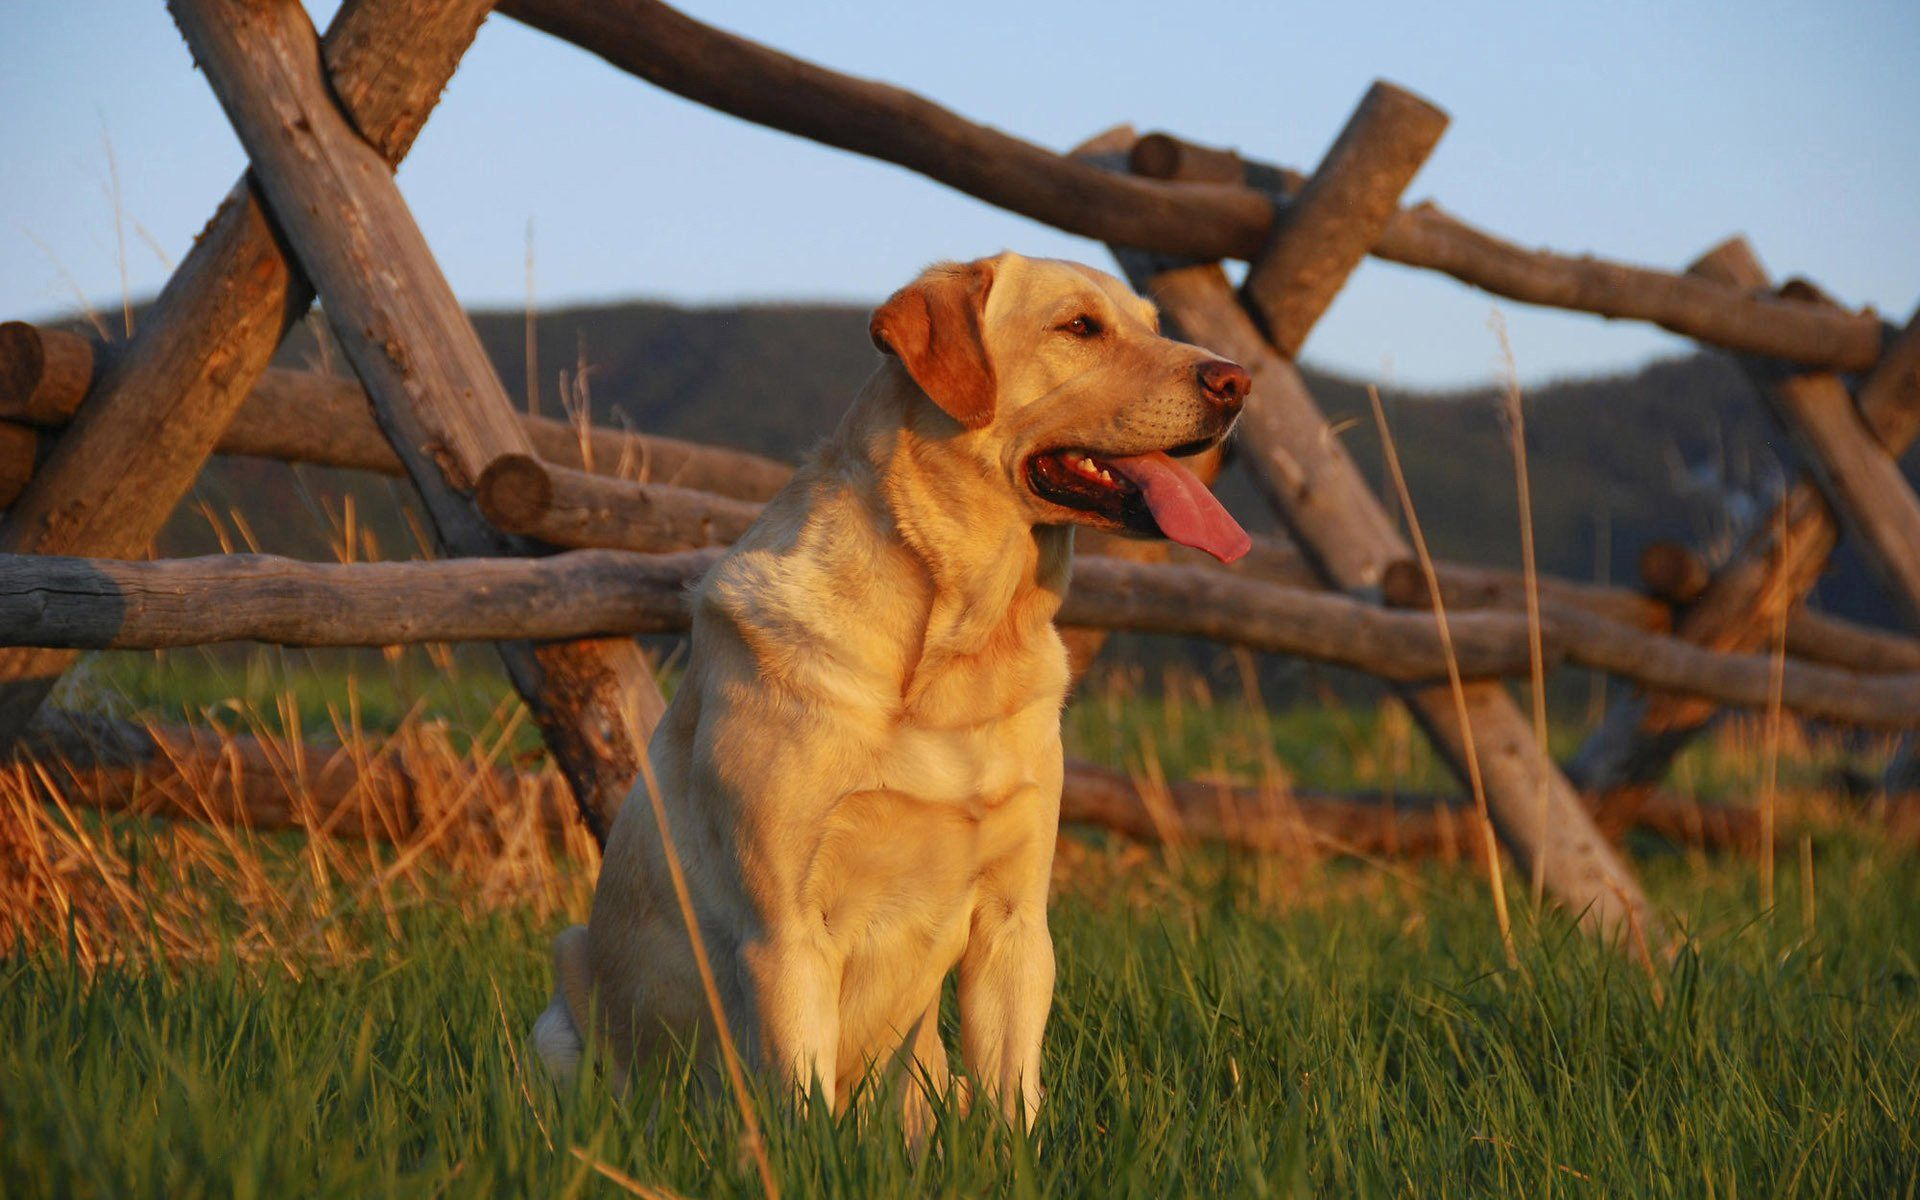 136925 download wallpaper Animals, Labrador, Sunset, Grass, Fence, Expectation, Waiting, Dog screensavers and pictures for free